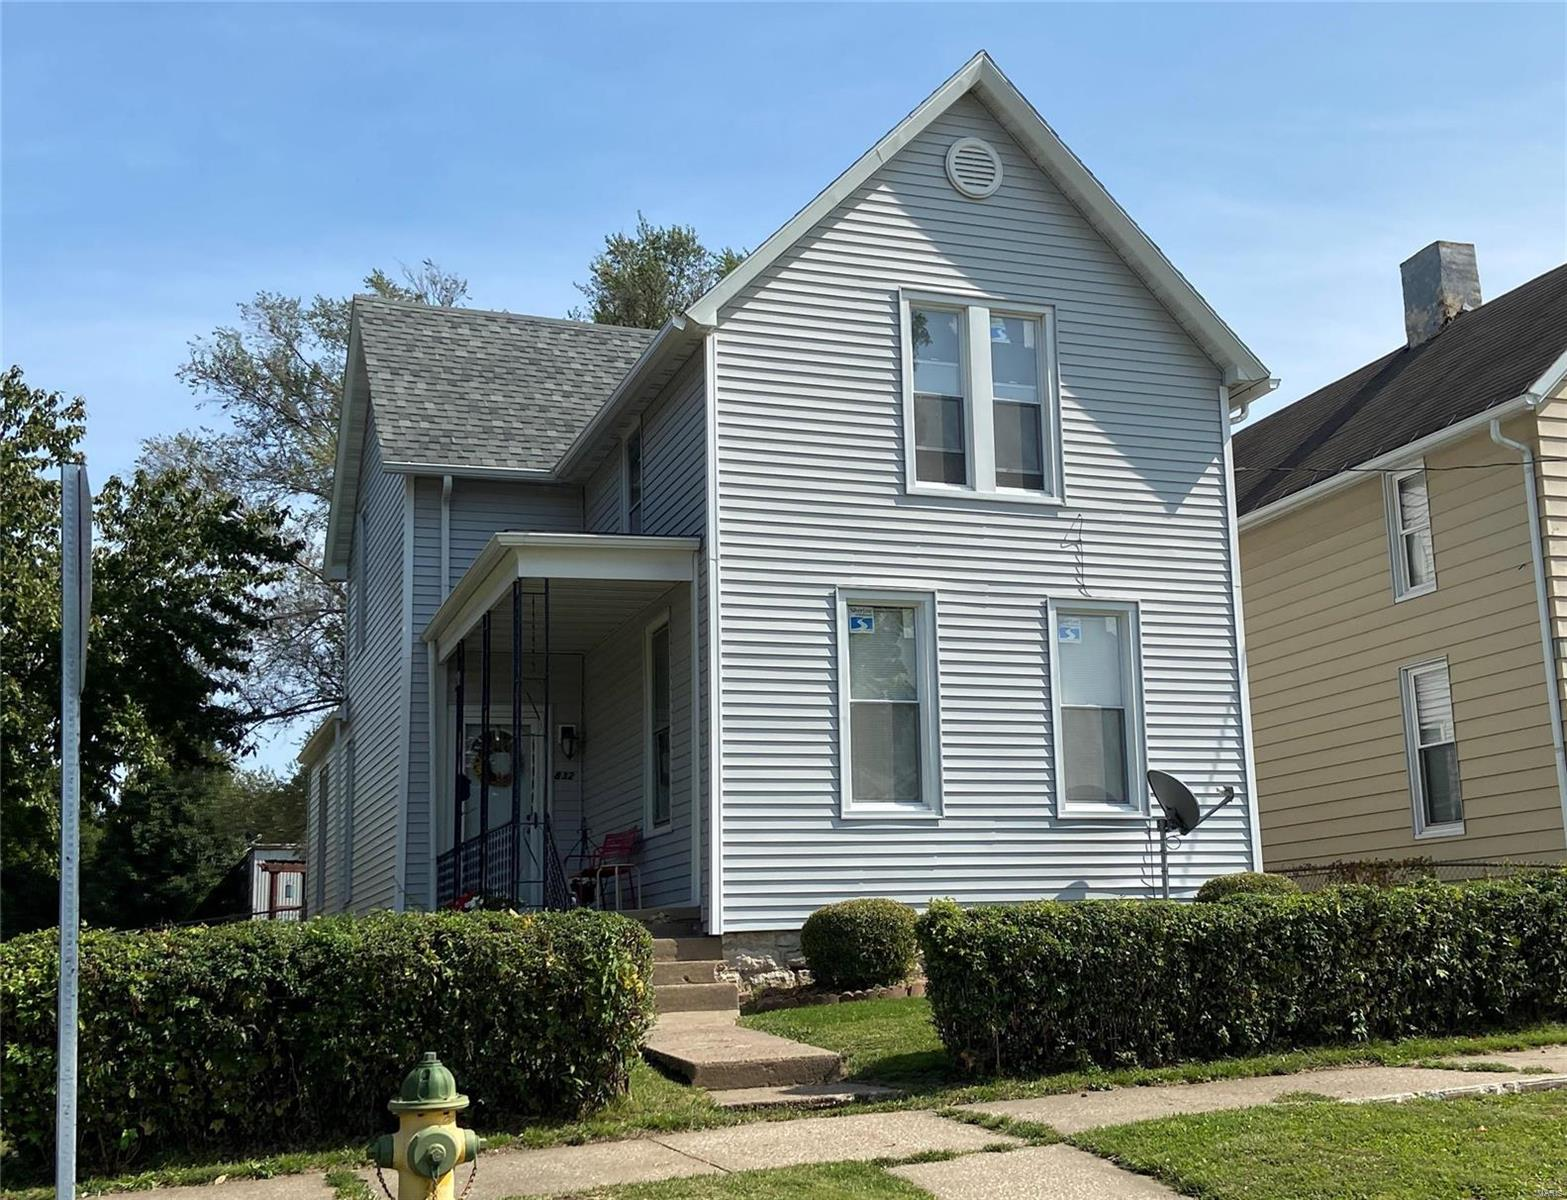 832 N 11th St Property Photo - Quincy, IL real estate listing